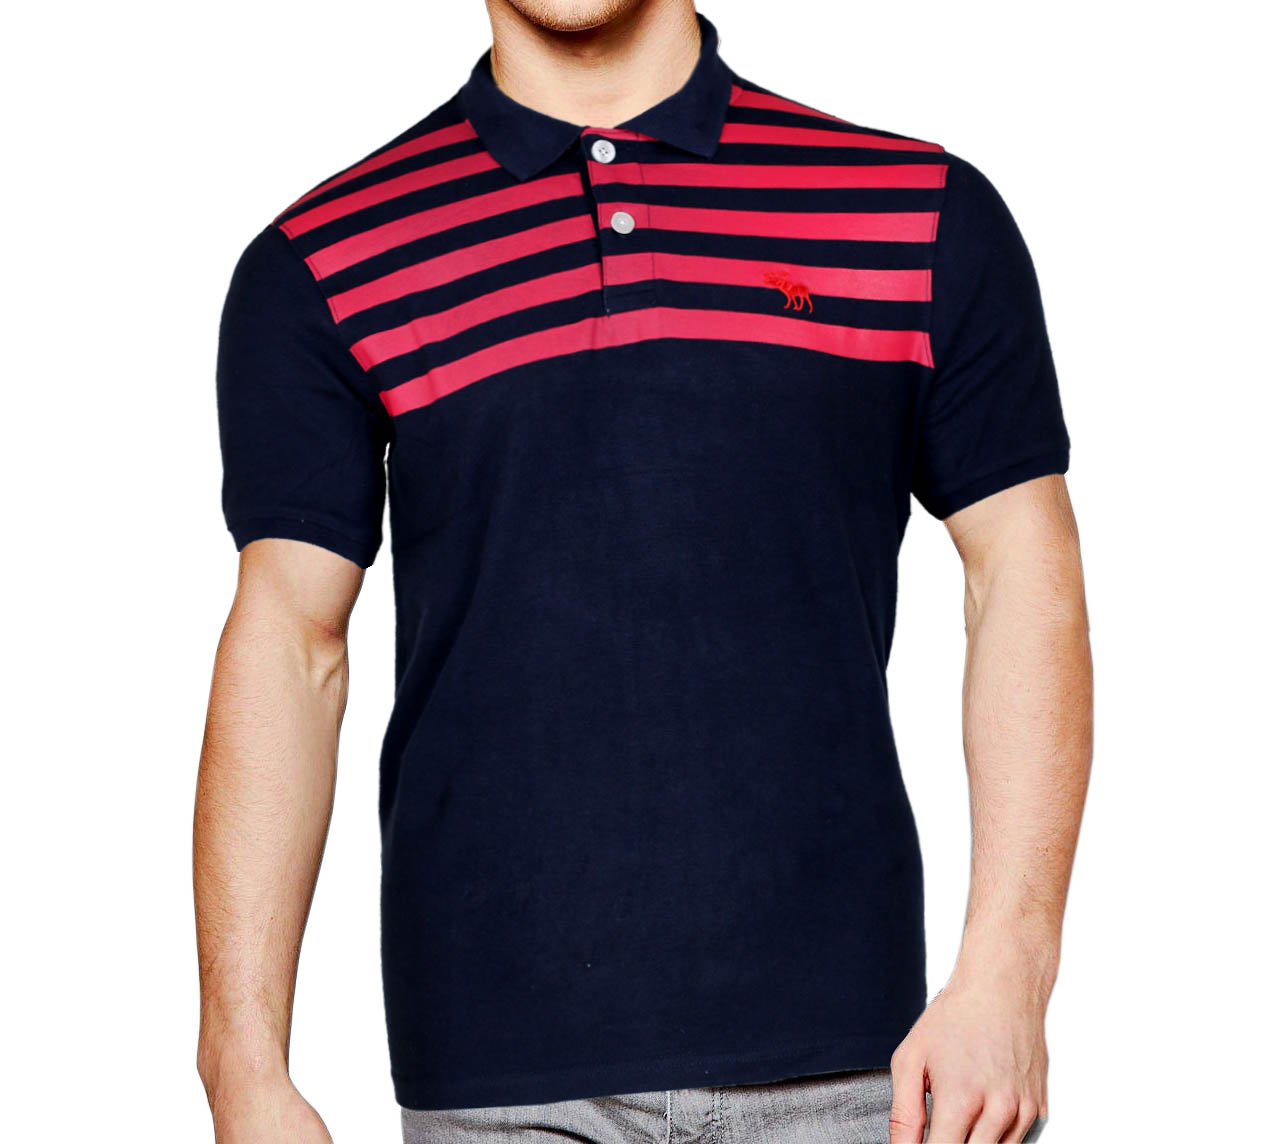 biggest discount professional design many fashionable Black Color Stripe Cotton Polo T-shirt for Men Stylish Design and  Comfortable Export Quality